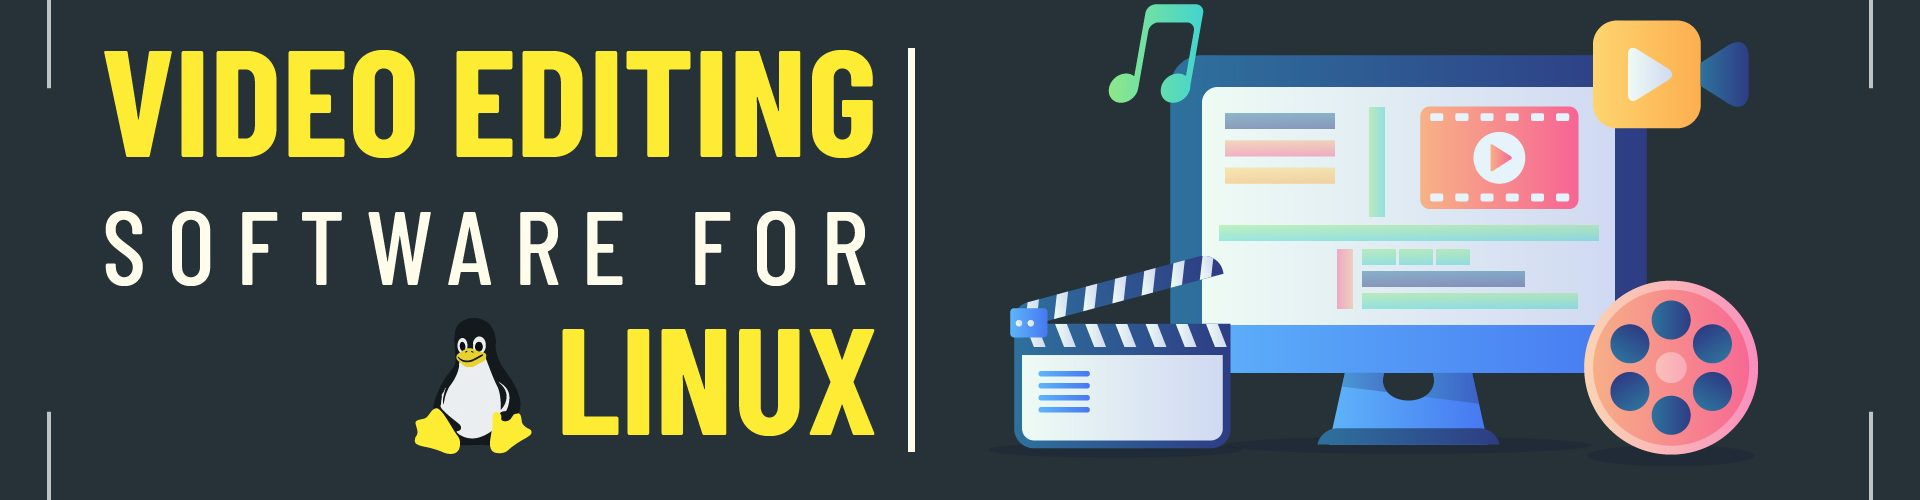 Take a look at the 10+ Best Video Editing Softwares for Linux